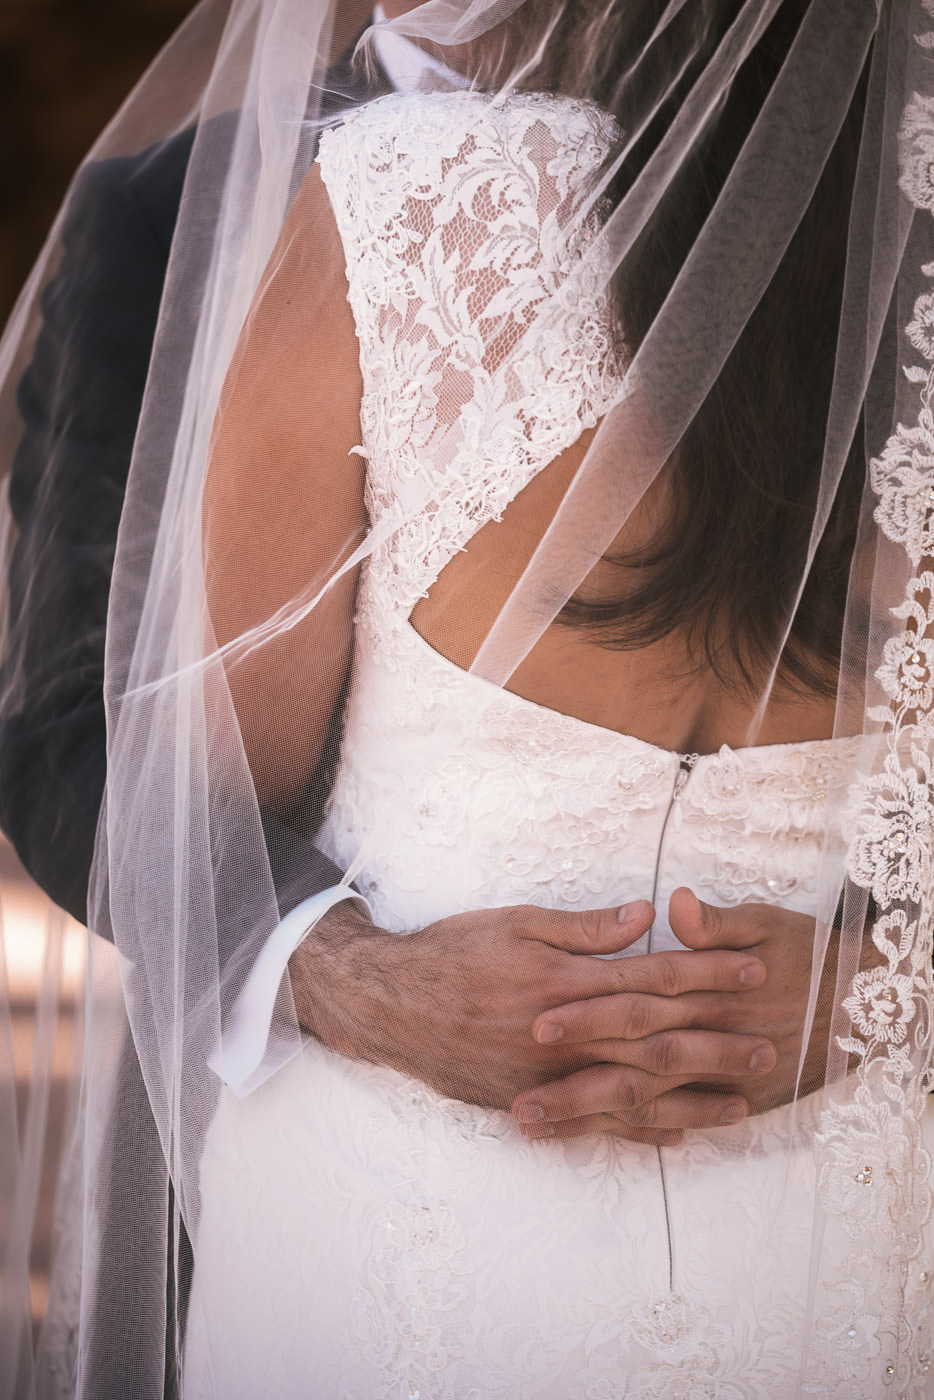 Husband clasps his arms around his bride and holds her romantically.